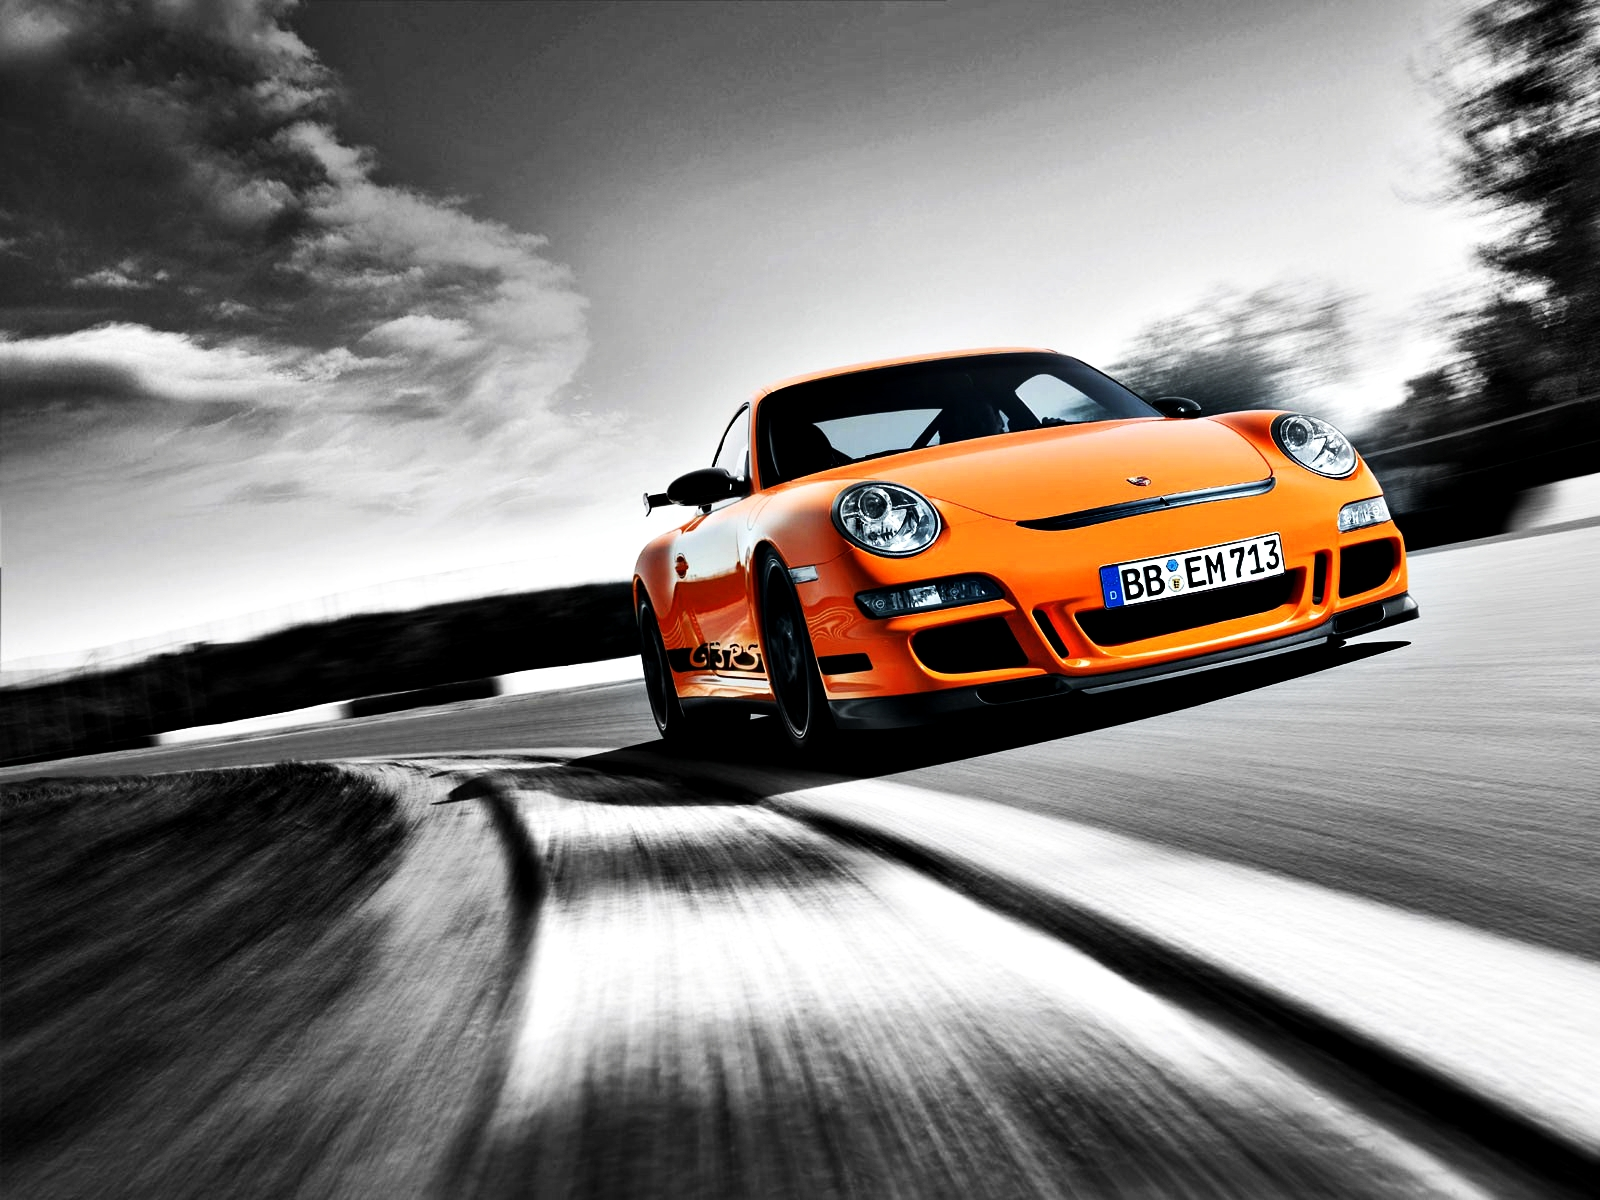 hd car wallpapers is the no 1 source of car wallpapers